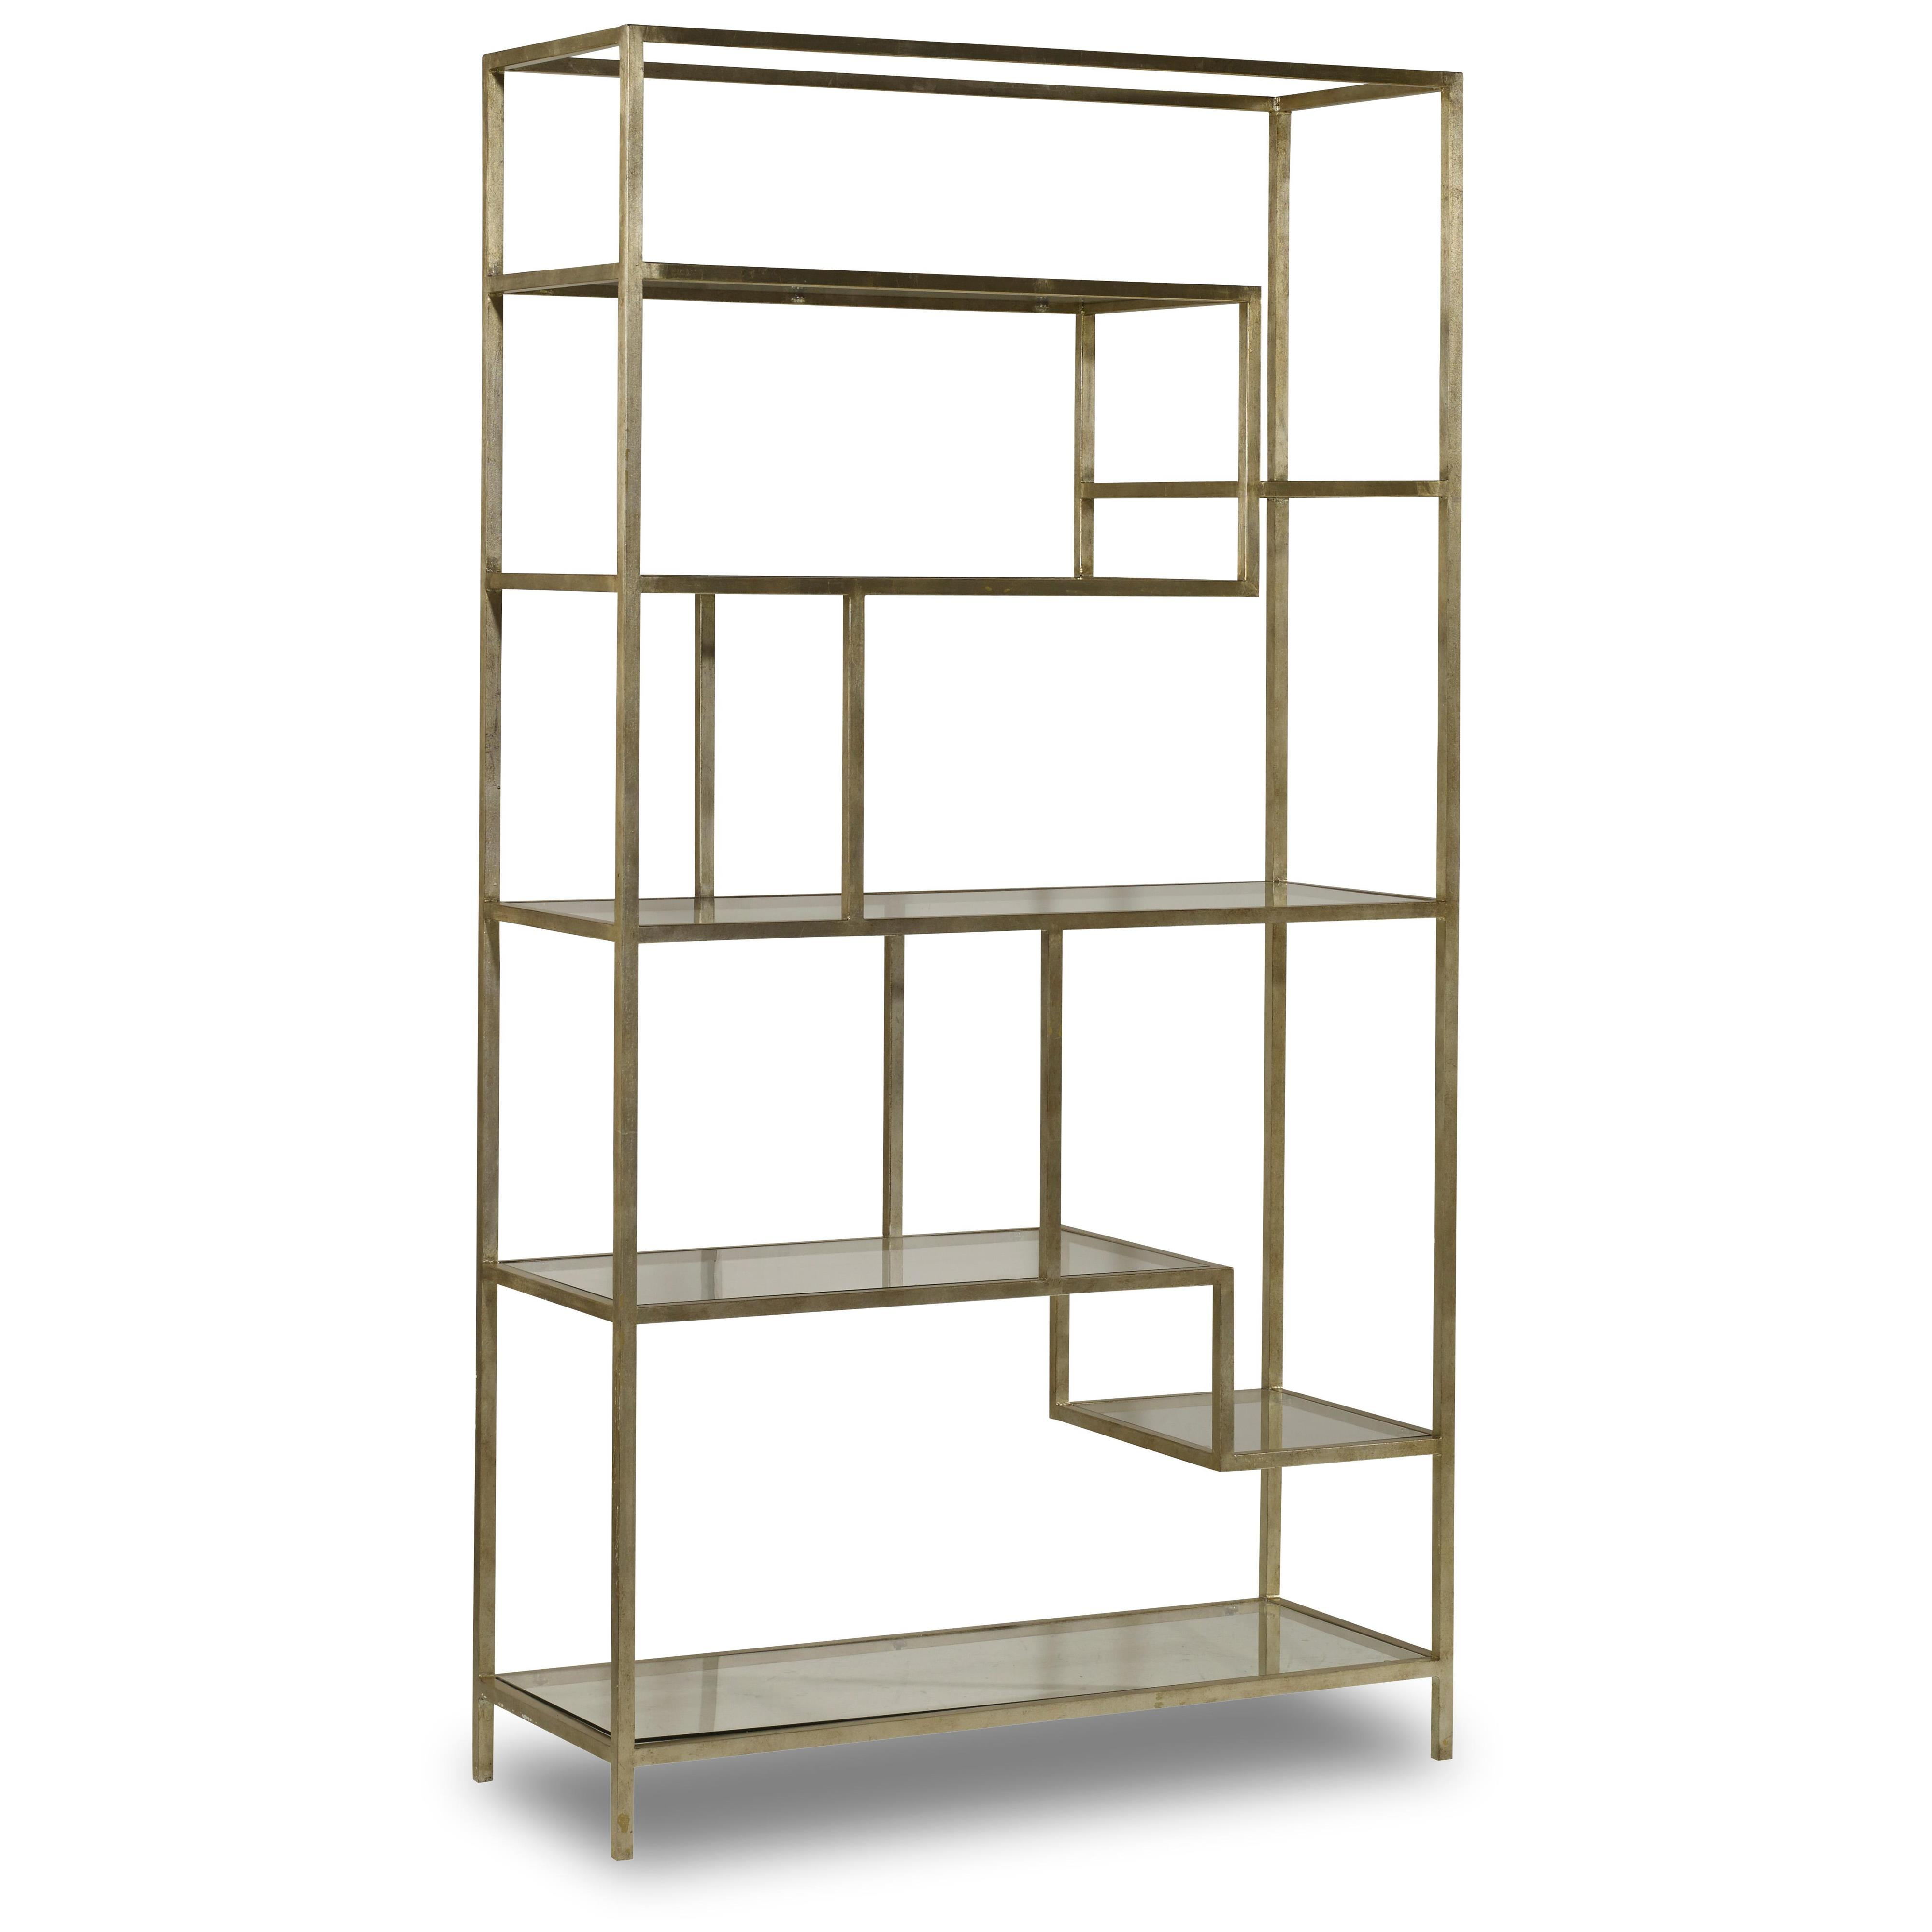 Living Room Accents Etagere by Hooker Furniture at Gill Brothers Furniture